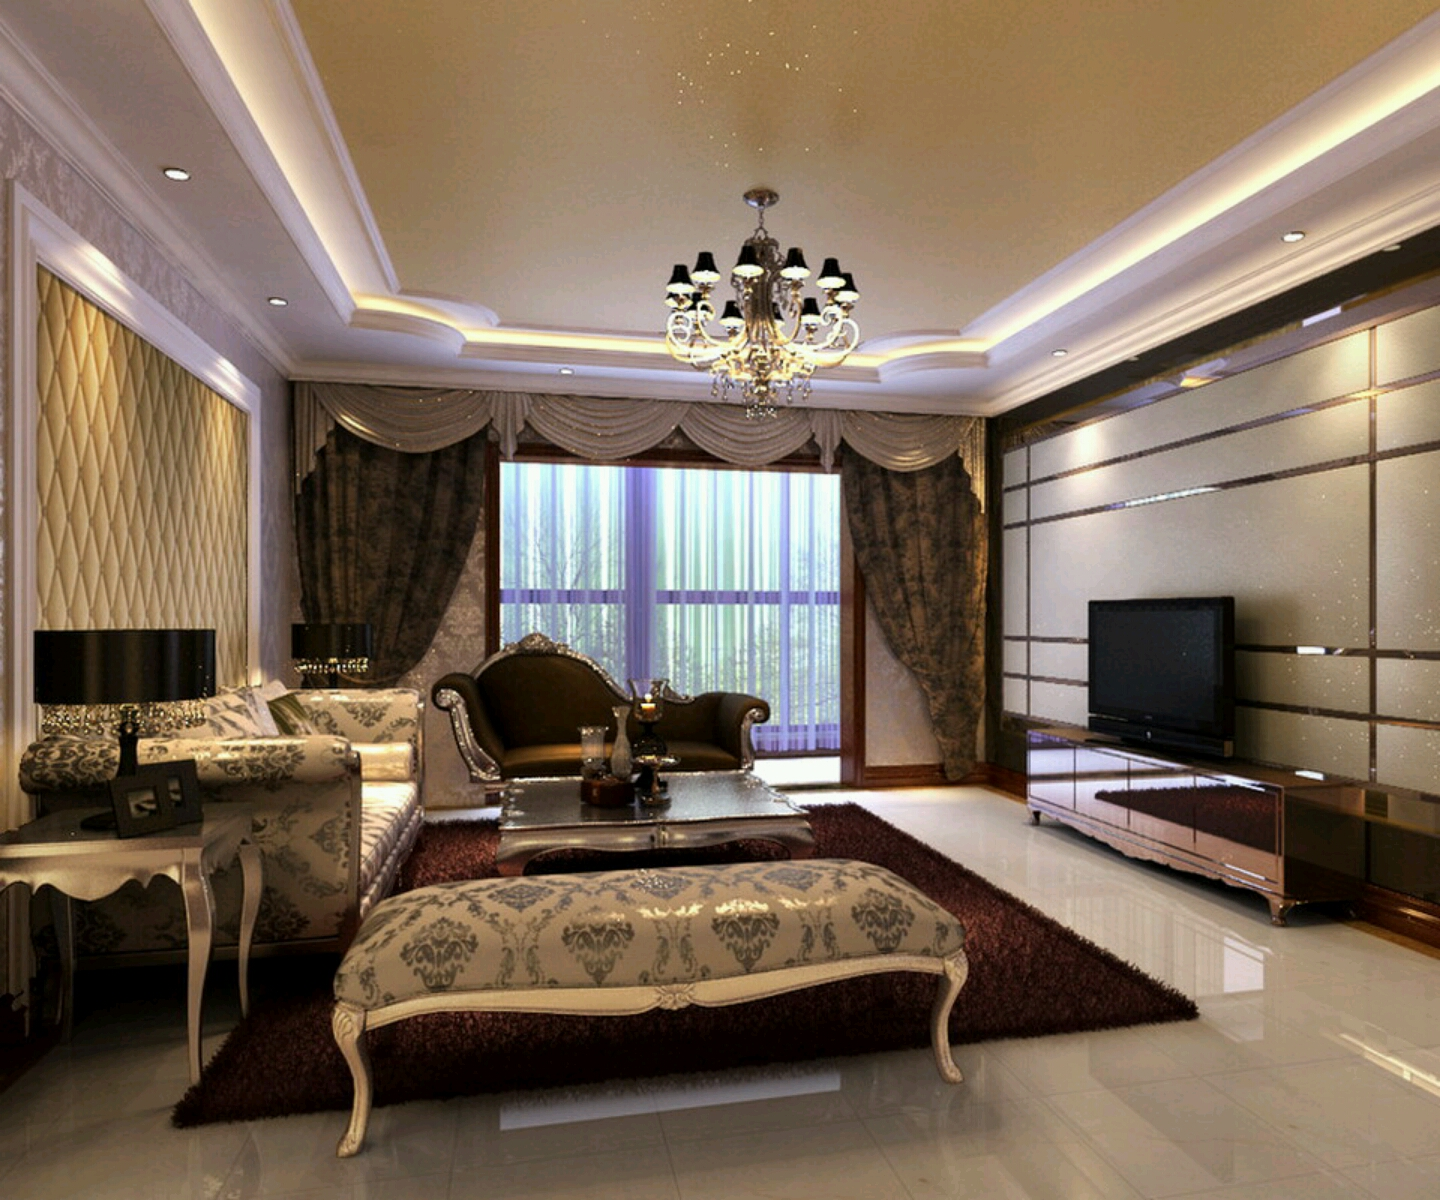 New home designs latest luxury homes interior decoration for New house decorating ideas